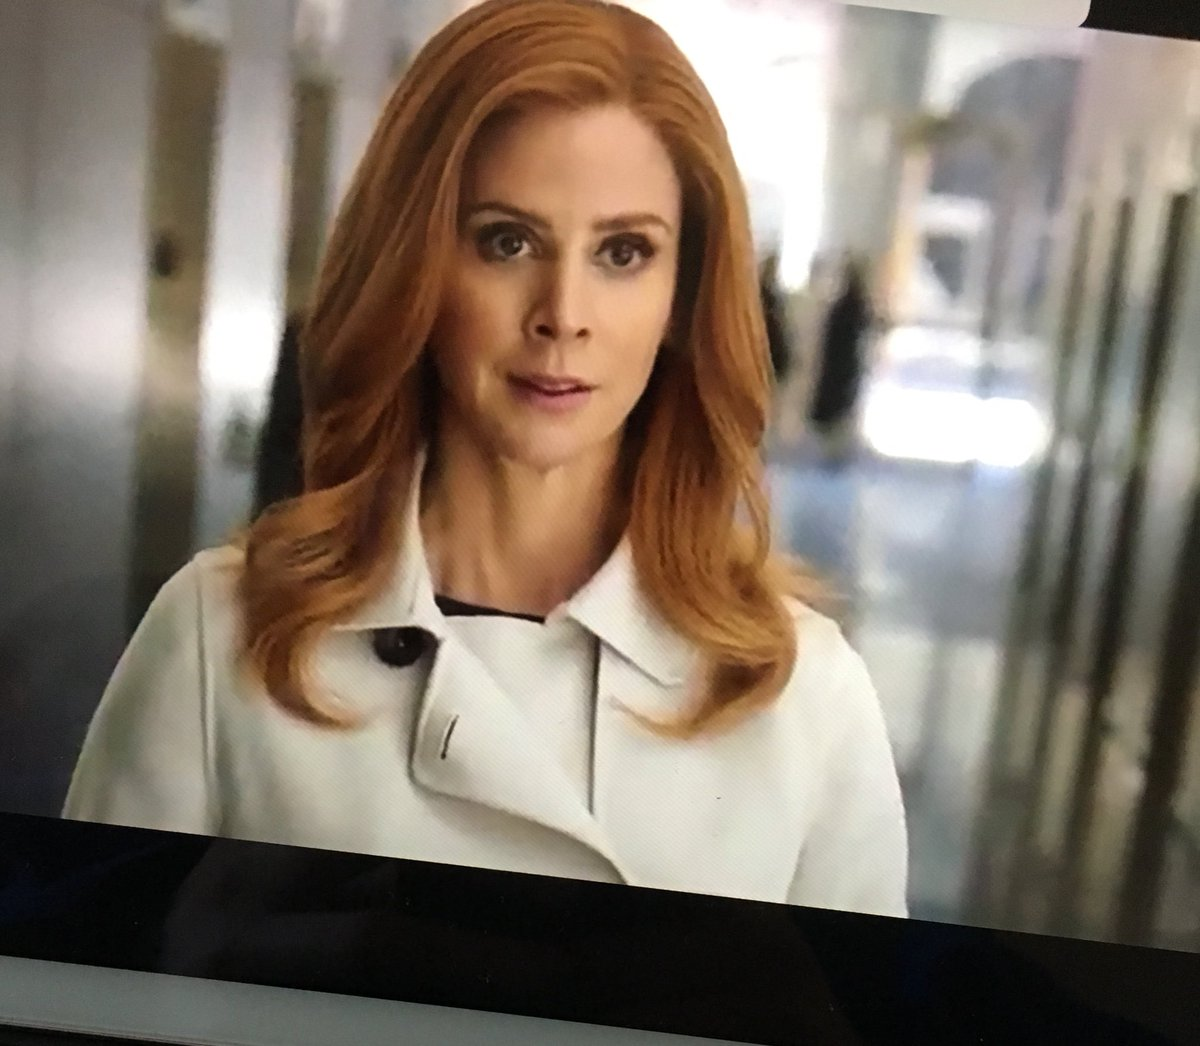 RT @greysfan: We all need Donna Paulson in our lives. @sarahgrafferty #Suits https://t.co/M9KTuapjTE